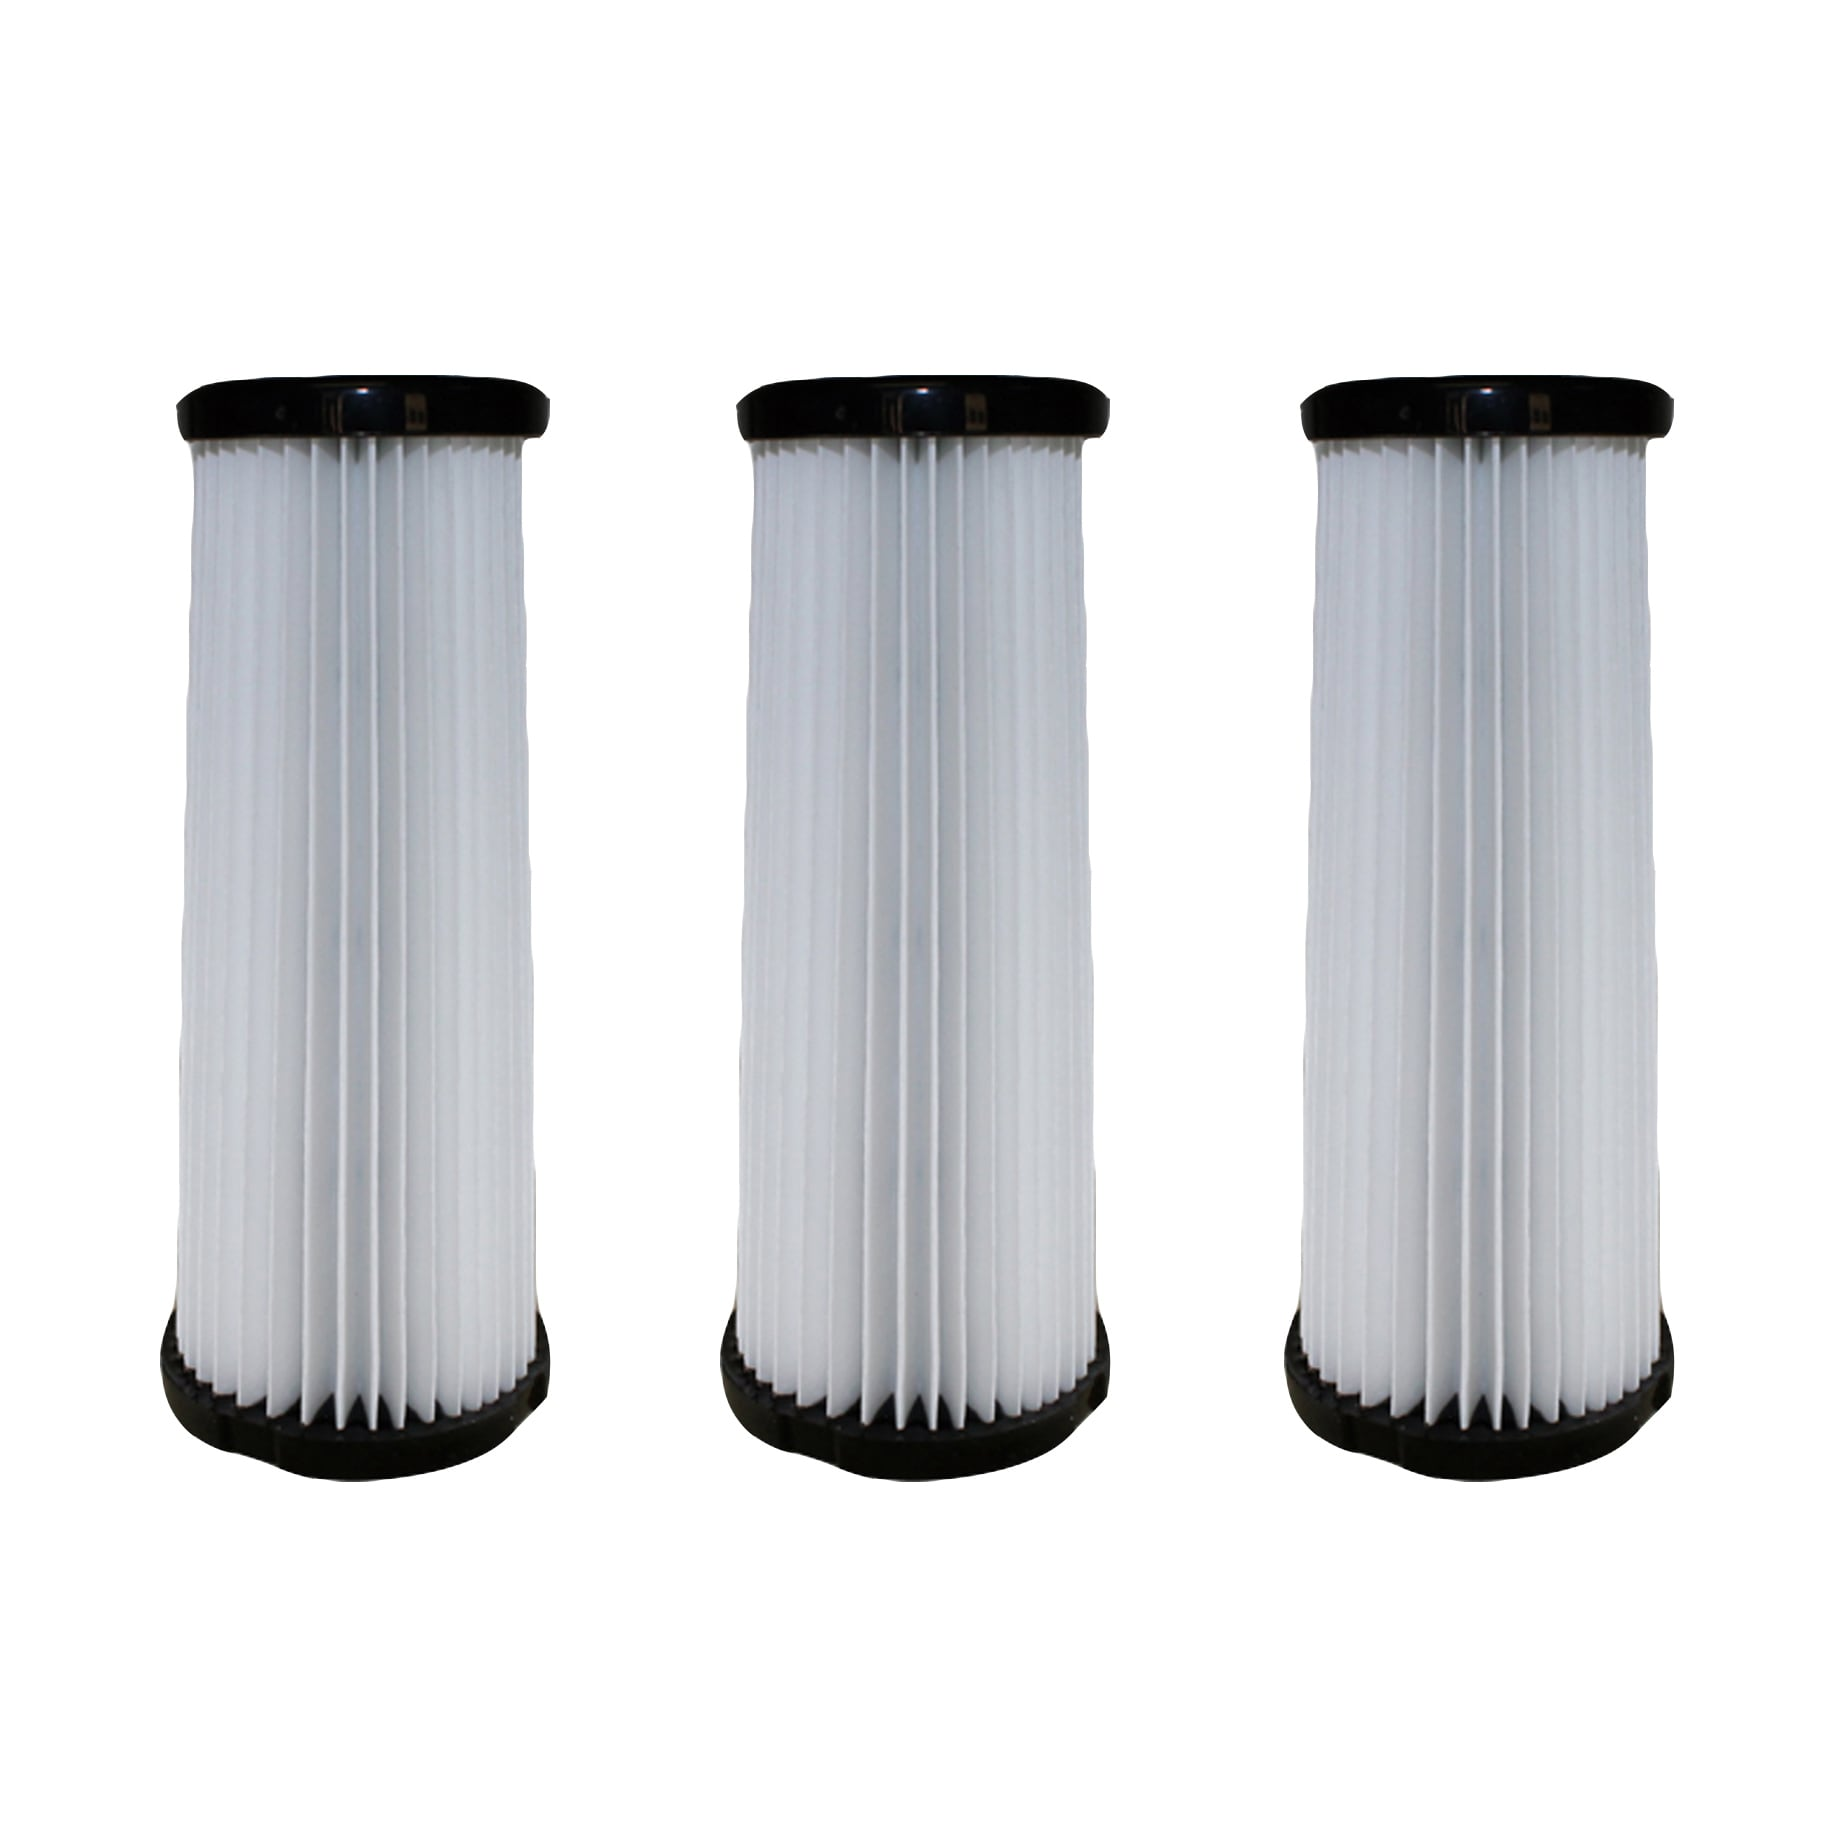 3pk Replacement F1 HEPA Style Filters, Fits Dirt Devil, Compatible with  Part 3JC0280000, 2JC0280000 & 2JC0360000 - Free Shipping On Orders Over $45  ...